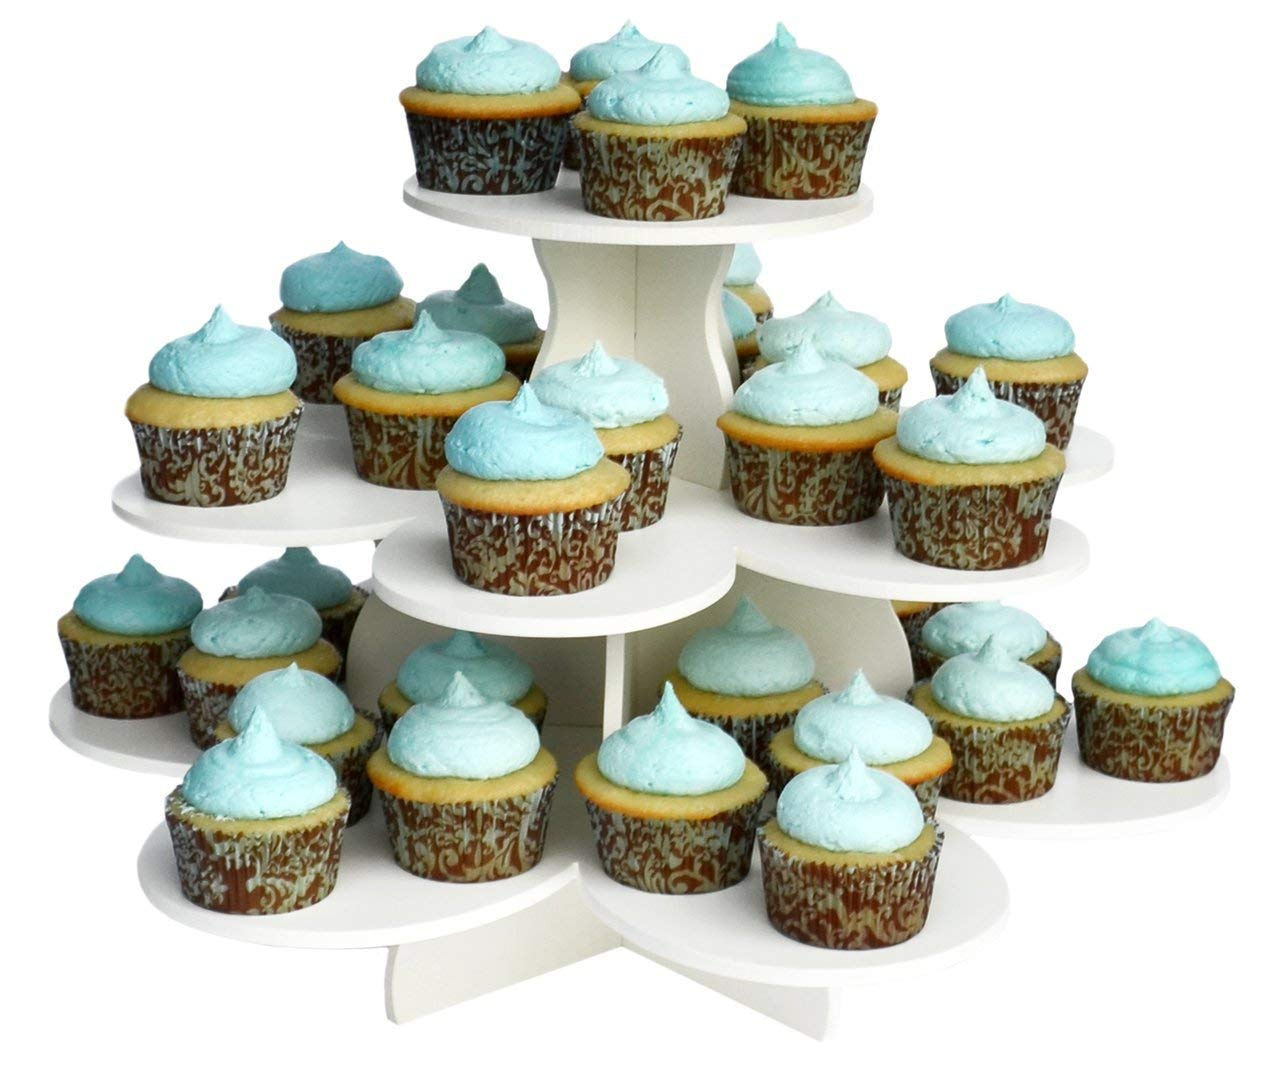 """The Smart Baker 3 Tier Flower Cupcake Tower Stand Holds 48+ Cupcakes""""As Seen on Shark Tank"""" Cupcake Stand"""